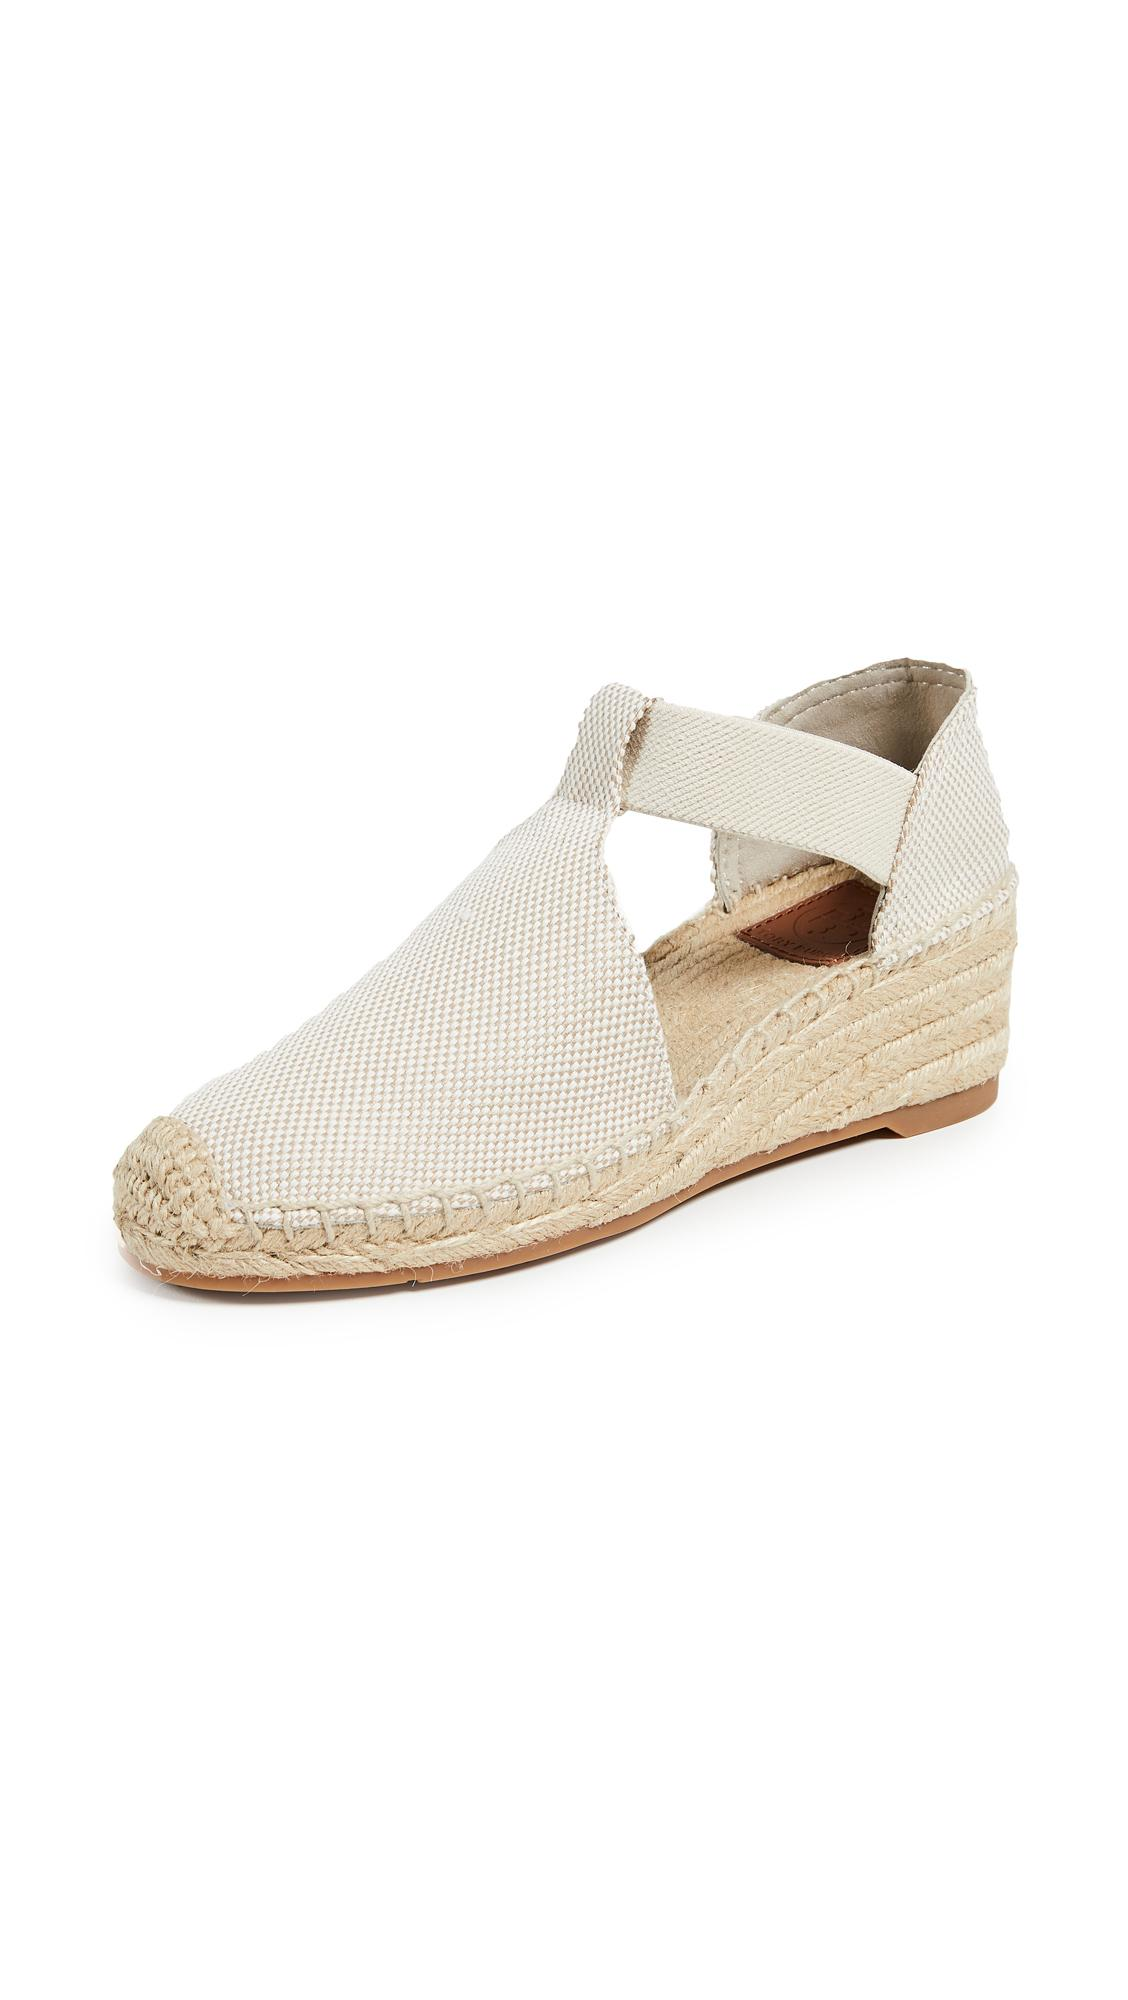 Tory Burch Catalina 3 50mm Espadrilles In Sand/natural